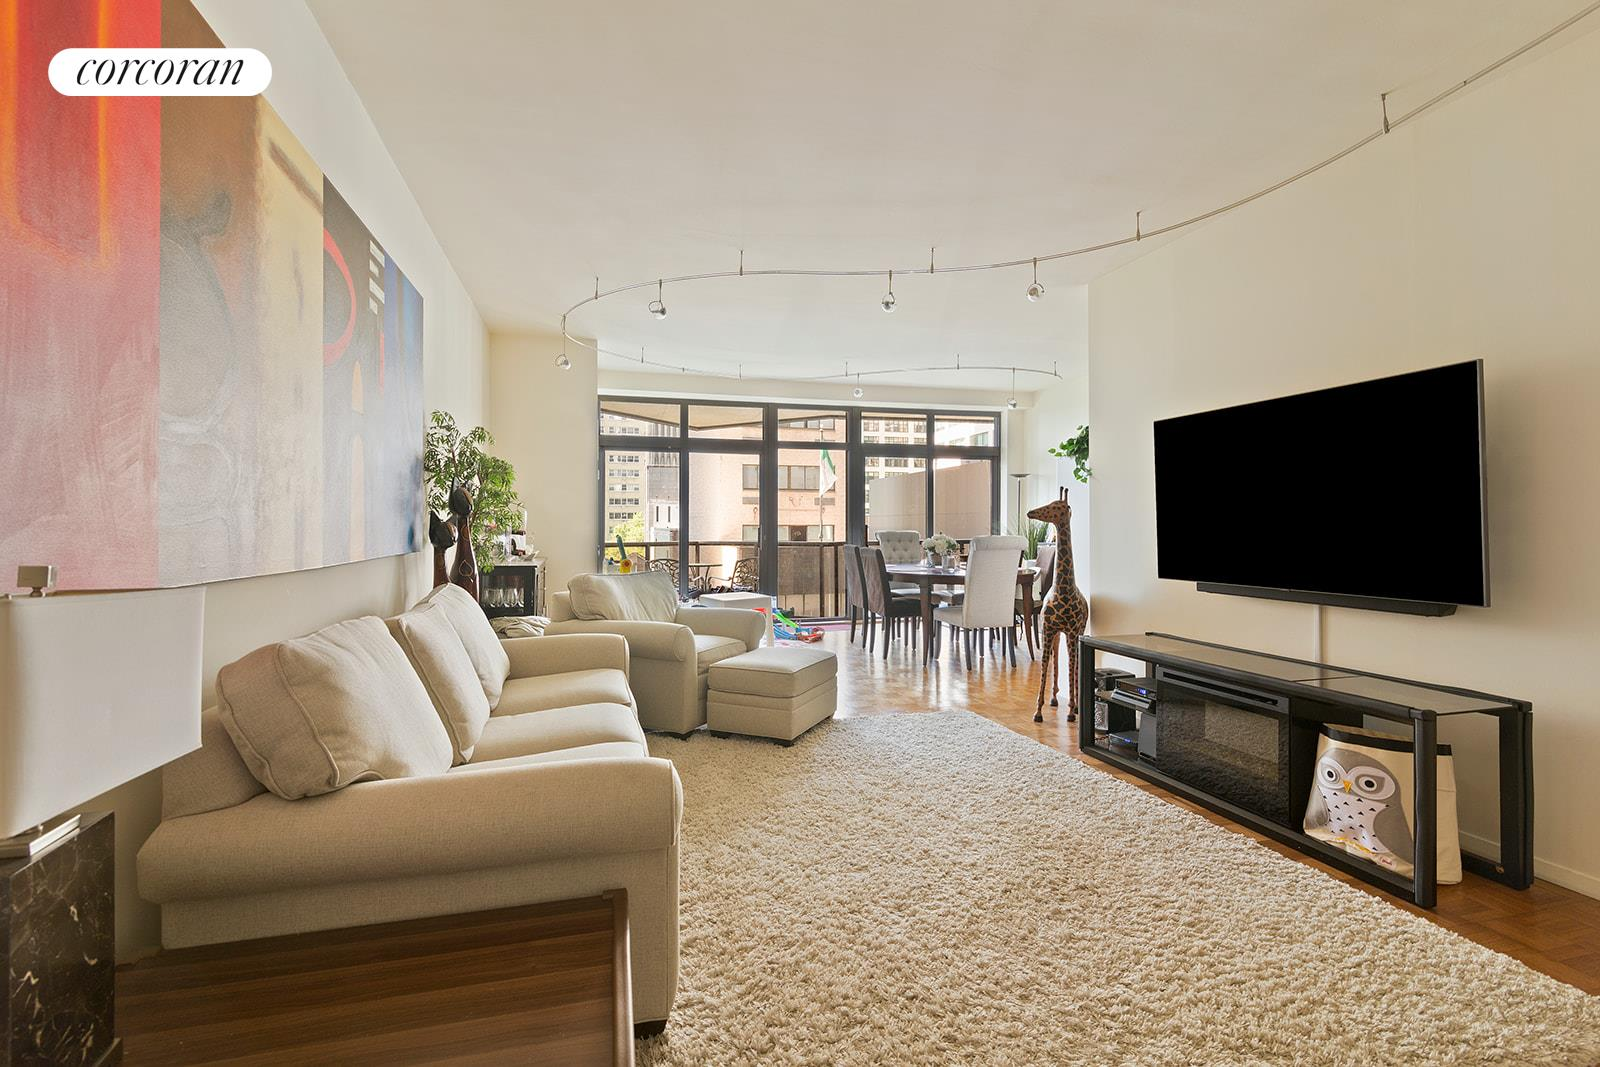 Great Investor Opportunity -- Tenant in place through at least June 30, 2021.Spacious corner unit with 2 bedrooms, 2.5 bathrooms and 2 private balconies available for sale at 100 United Nations Plaza – one of Turtle Bay's premier white glove condominiums.This highly desired E line apartment offers a split bedroom layout, three exposures, 9' ceilings and floor-to-ceiling windows in nearly every room. The spacious living room has direct views to the south with access to a private balcony and with a flexible layout to accommodate separate living and dining areas. A wall of floor-to-ceiling windows provide loads of natural light and city views to the south.The kitchen was just renovated and features brand new cabinets, counter tops, backsplash, sink and new lighting. The master bedroom suite has floor-to-ceiling windows including a sliding glass door to the second, north-facing private balcony. There is also a very large walk-in closet and en suite marble bathroom with a Jacuzzi bathtub. The south-facing second bedroom is equally as large and has its own en suite marble bathroom and two closets. This unit also has central heat and A/C and guest powder room.Located on East 48th Street and First Avenue, 100 United Nations Plaza is a white-glove, full service condominium in Manhattan's Turtle Bay neighborhood. Greeting residents with beautifully landscaped gardens and waterfalls, this impeccably run building offers a 24-hour doorman, valet and concierge service, on-site management office, renovated lobby and resident's lounge, common laundry room, fitness center and direct access to a 24-hour attended parking garage. Conveniently located to transportation and many great shops and restaurants.